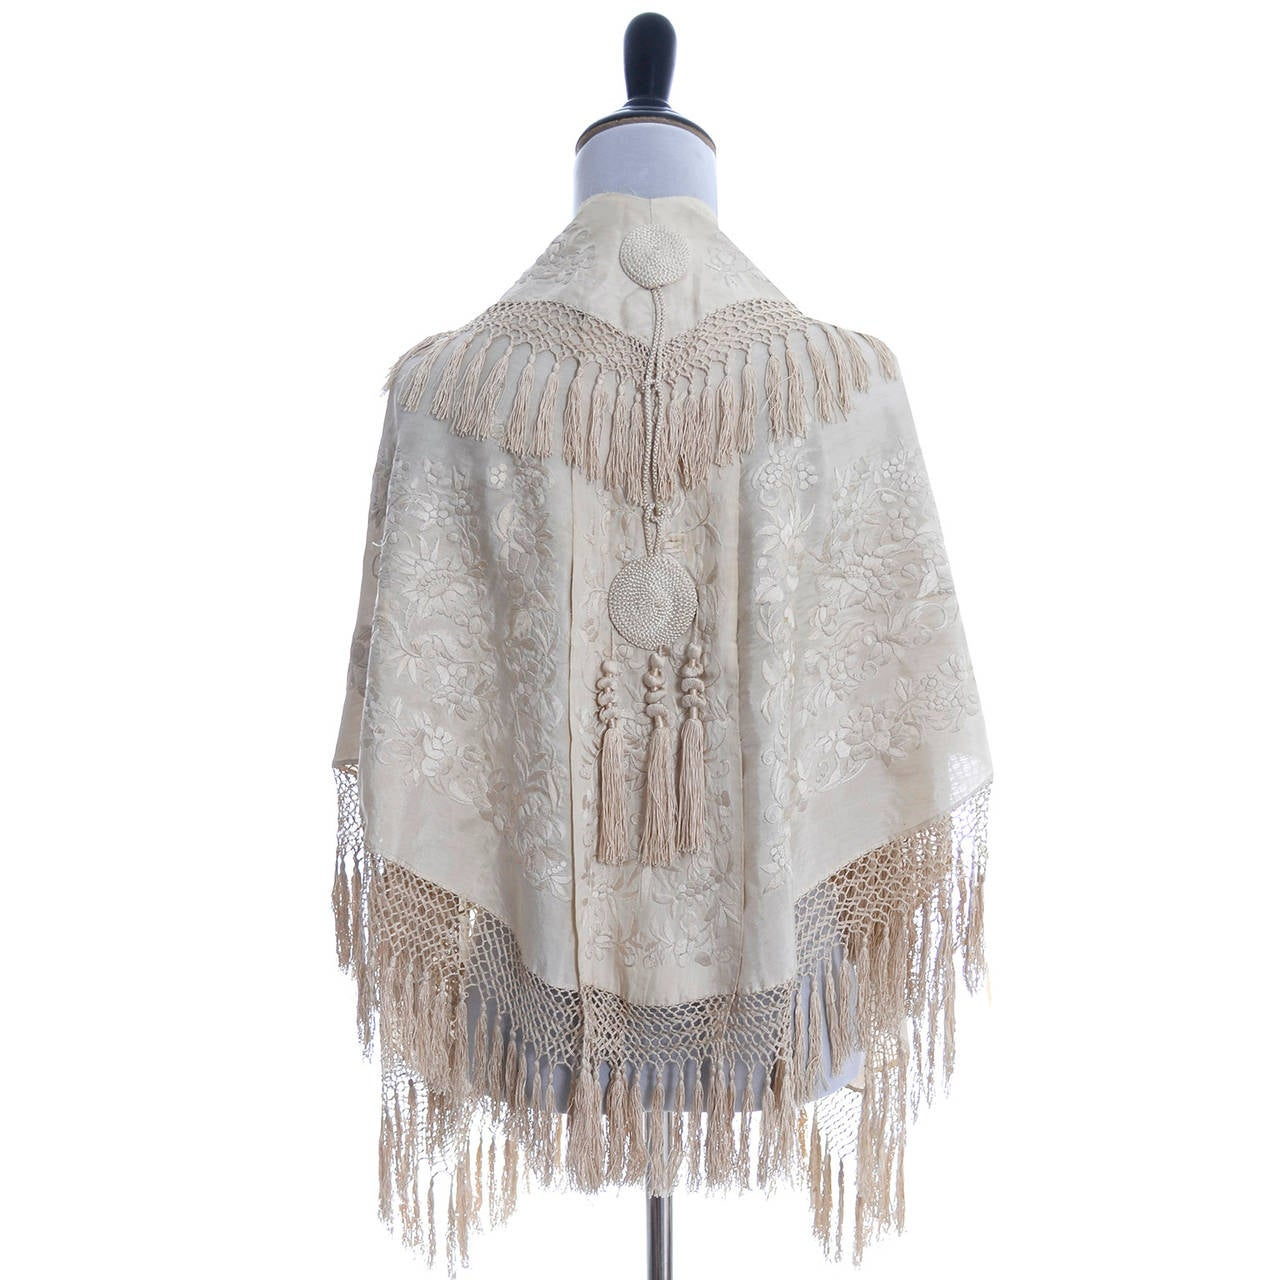 Ivory Edwardian Vintage Shawl Wrap Cape Fringe Antique Silk Embroidery Tassels 6